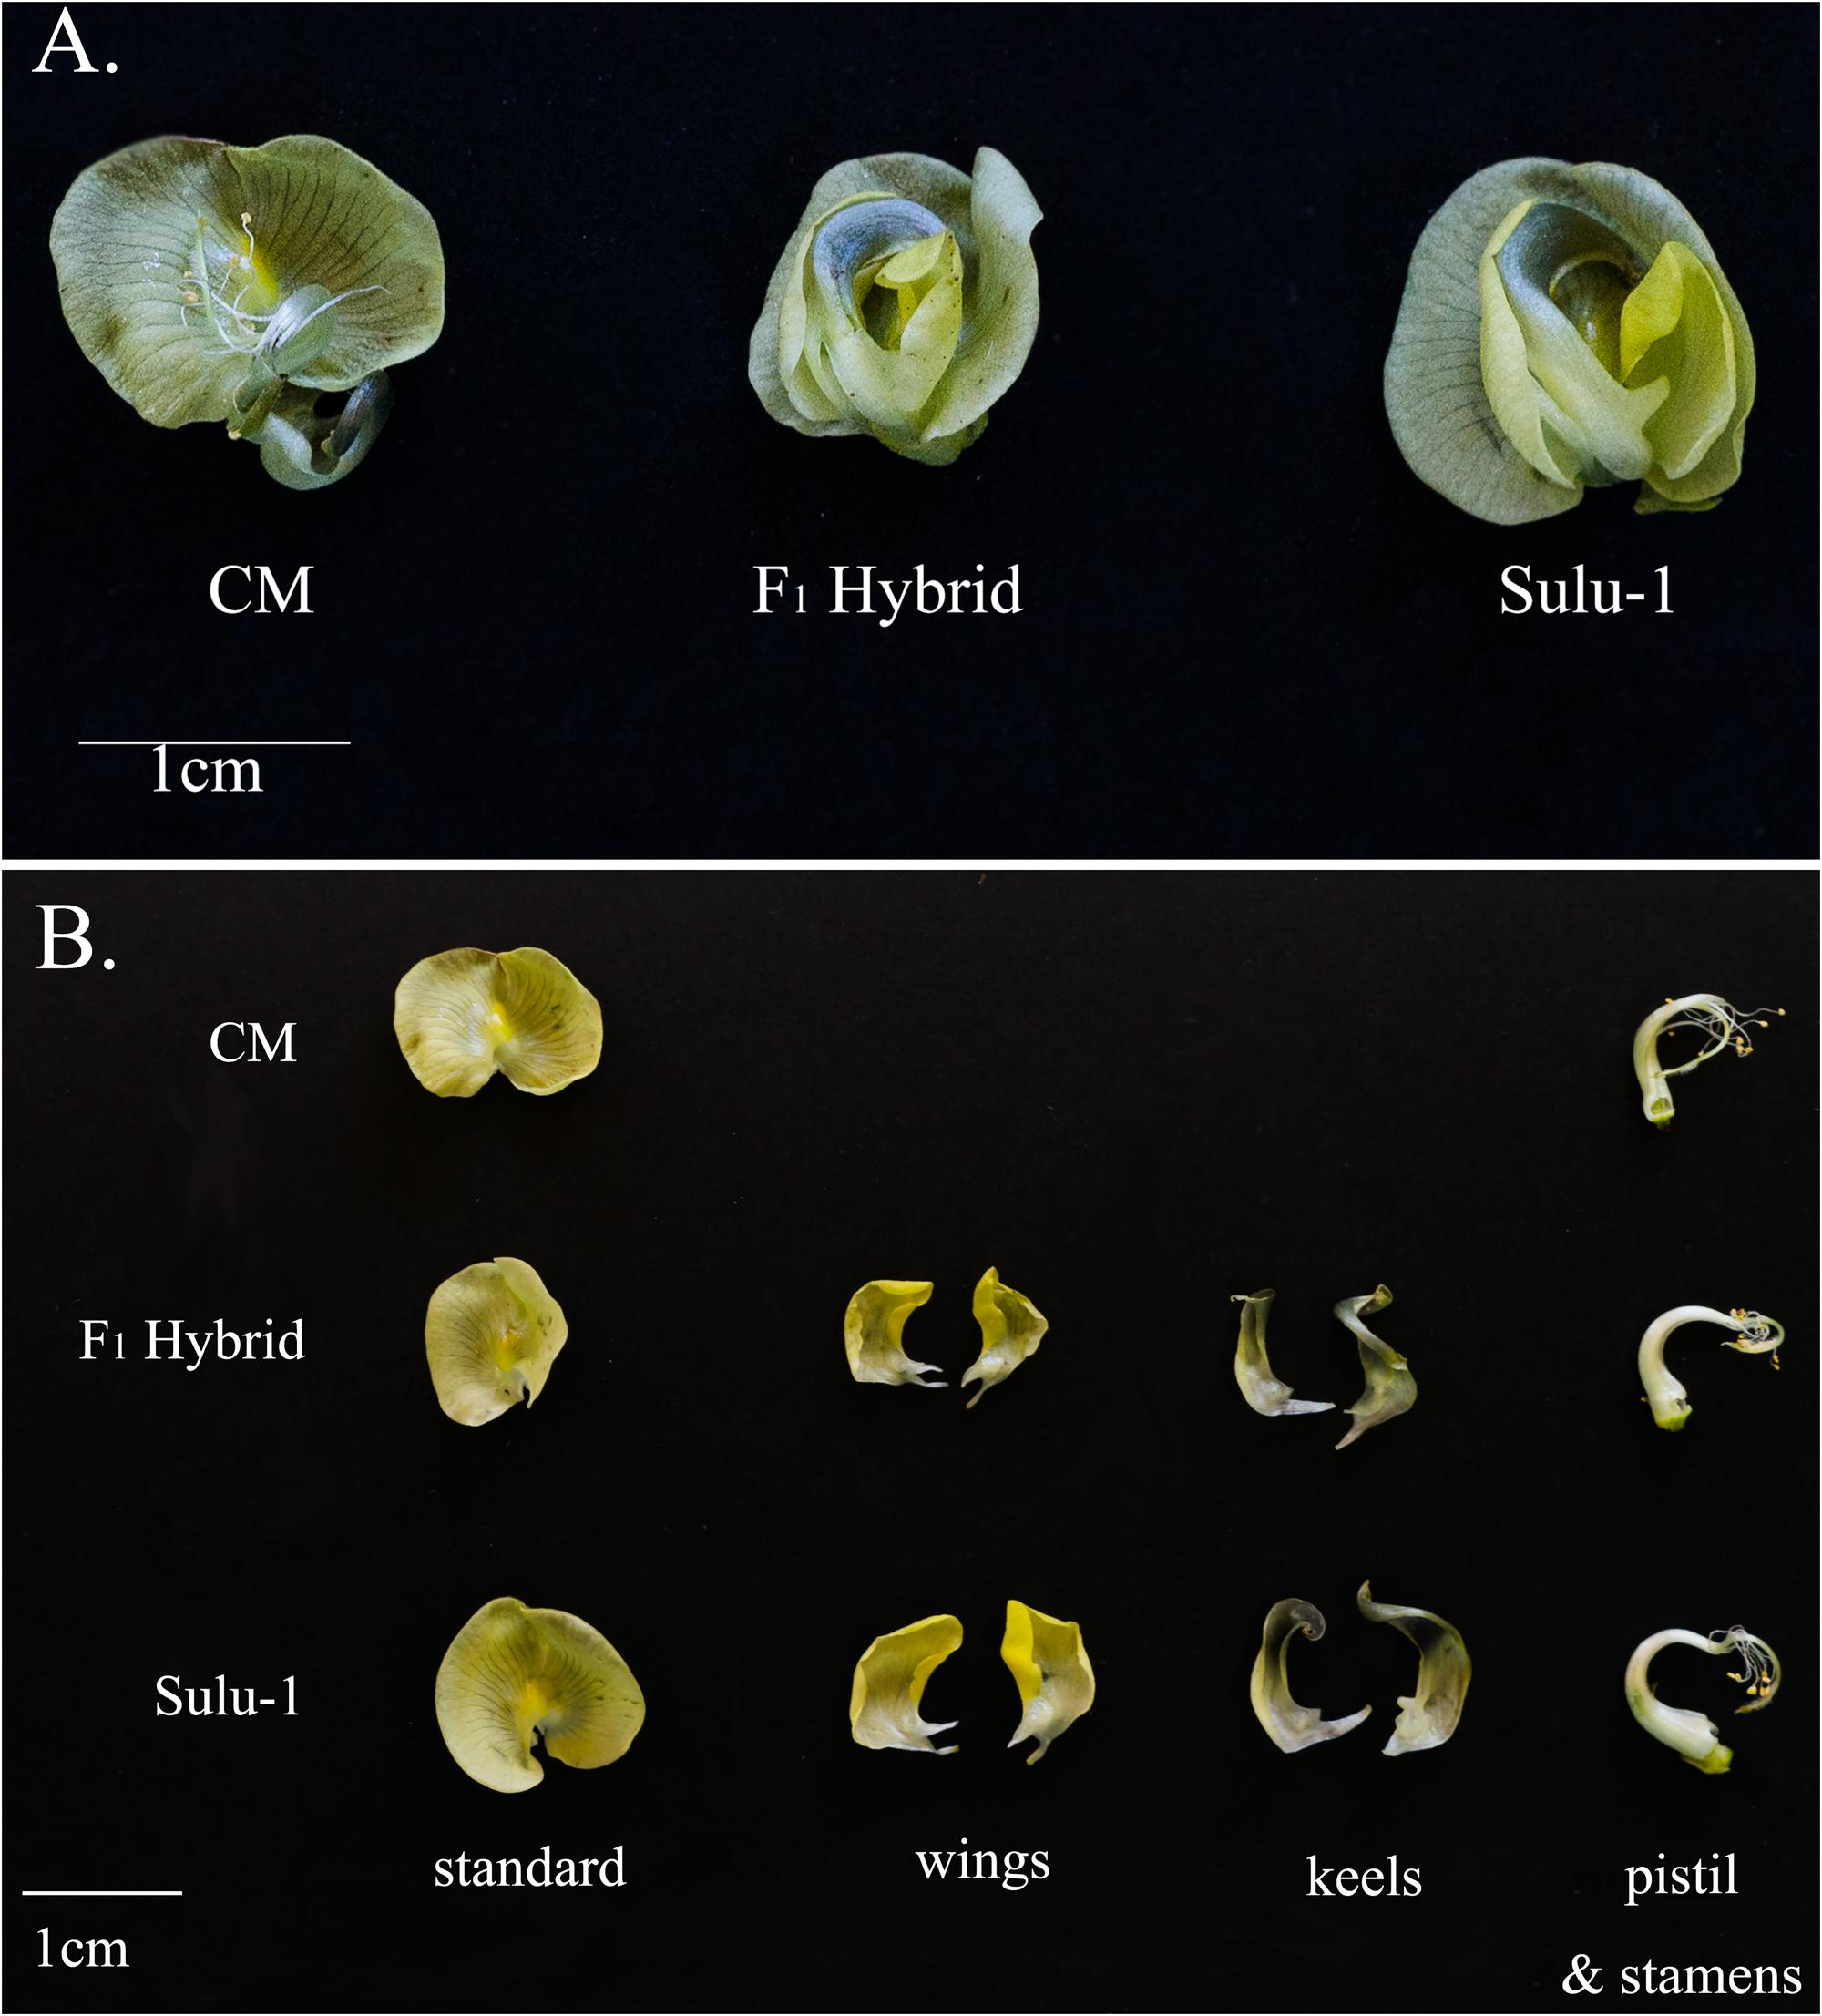 thesis on mungbean Review of literature characterization of endophytic rhizobacteria from vigna mungo (l) hepper and their role in biocontrol of macrophomina phaseolina (tassi) goid 8 the basis of sanskrit name urad is known as mash in punjab and mash kalaya in west bengal.